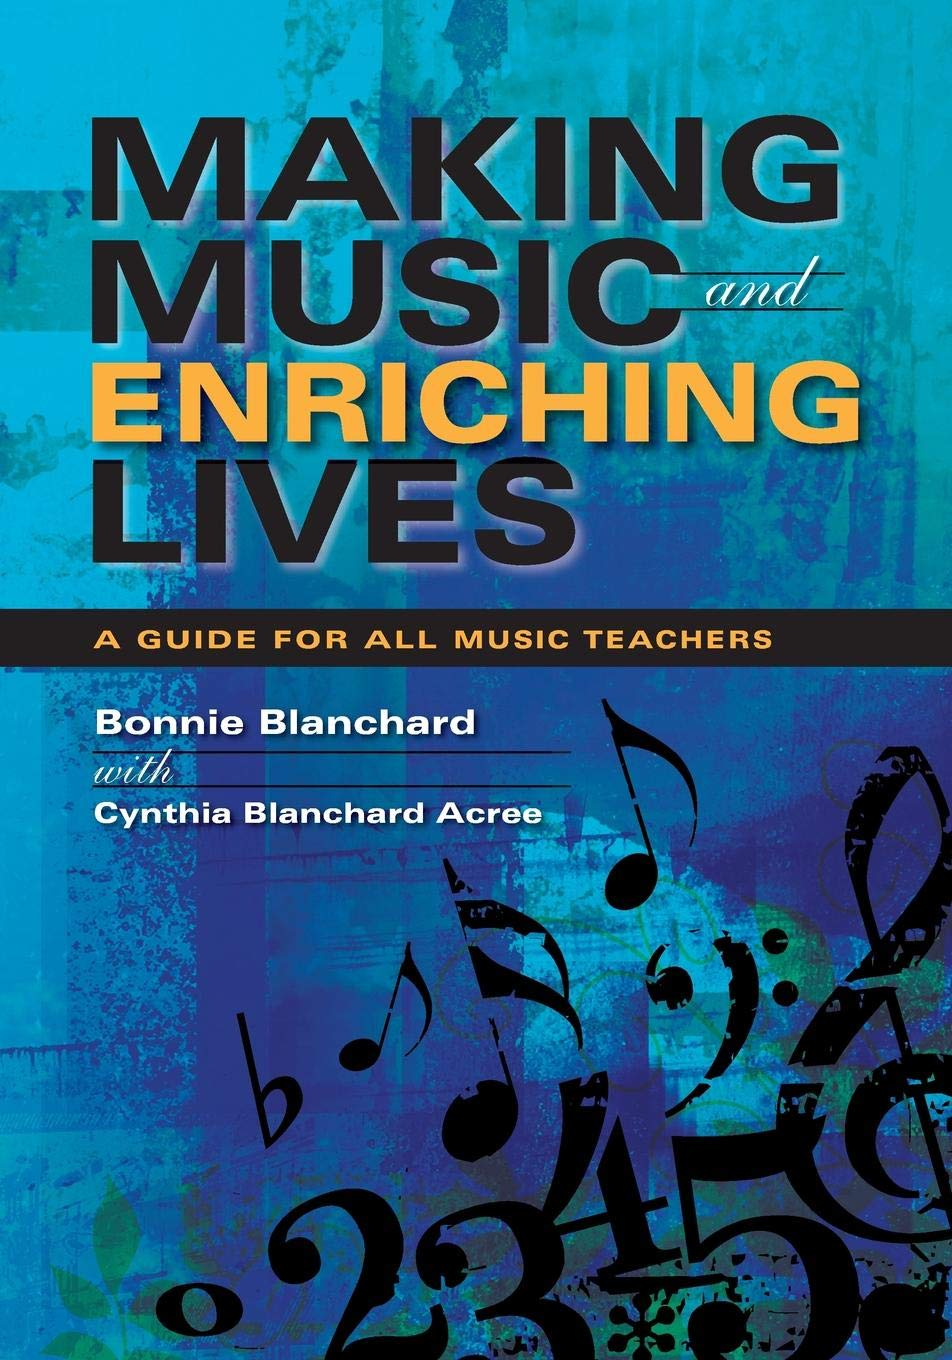 Making Music and Enriching Lives: A Guide for All Music Teachers